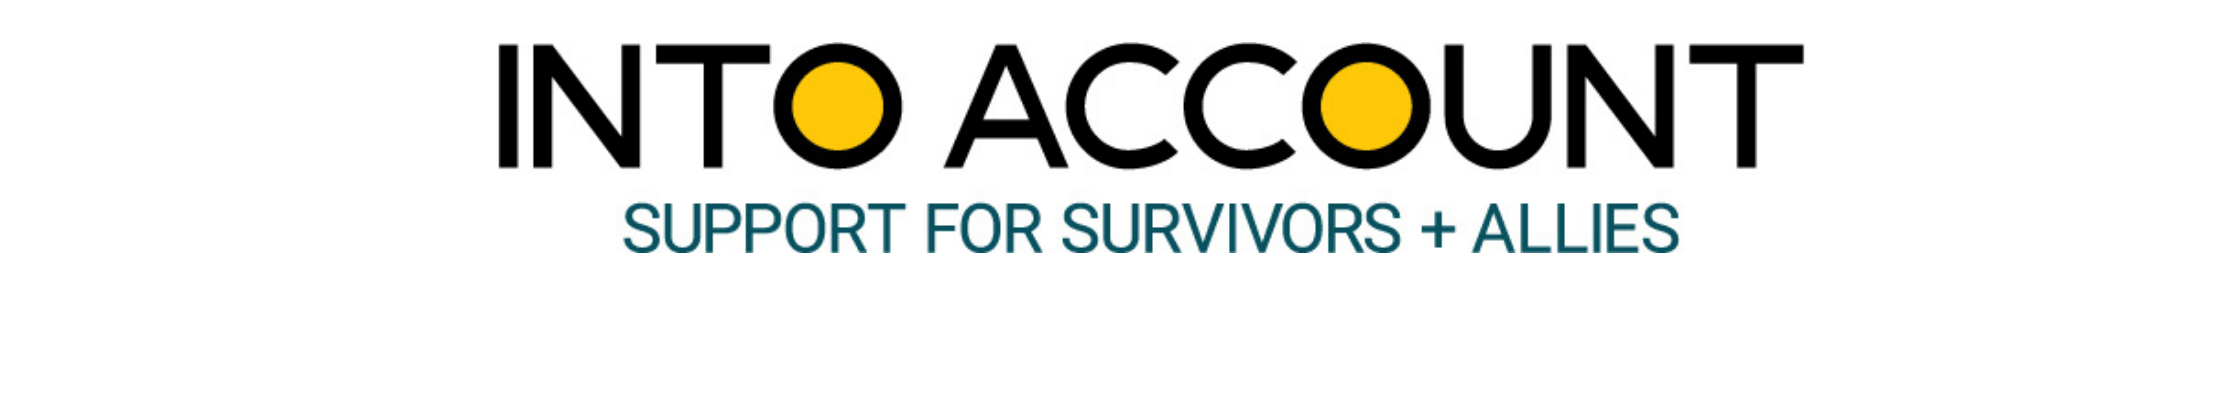 Into Account is here for survivors and allies of pastoral sexual misconduct